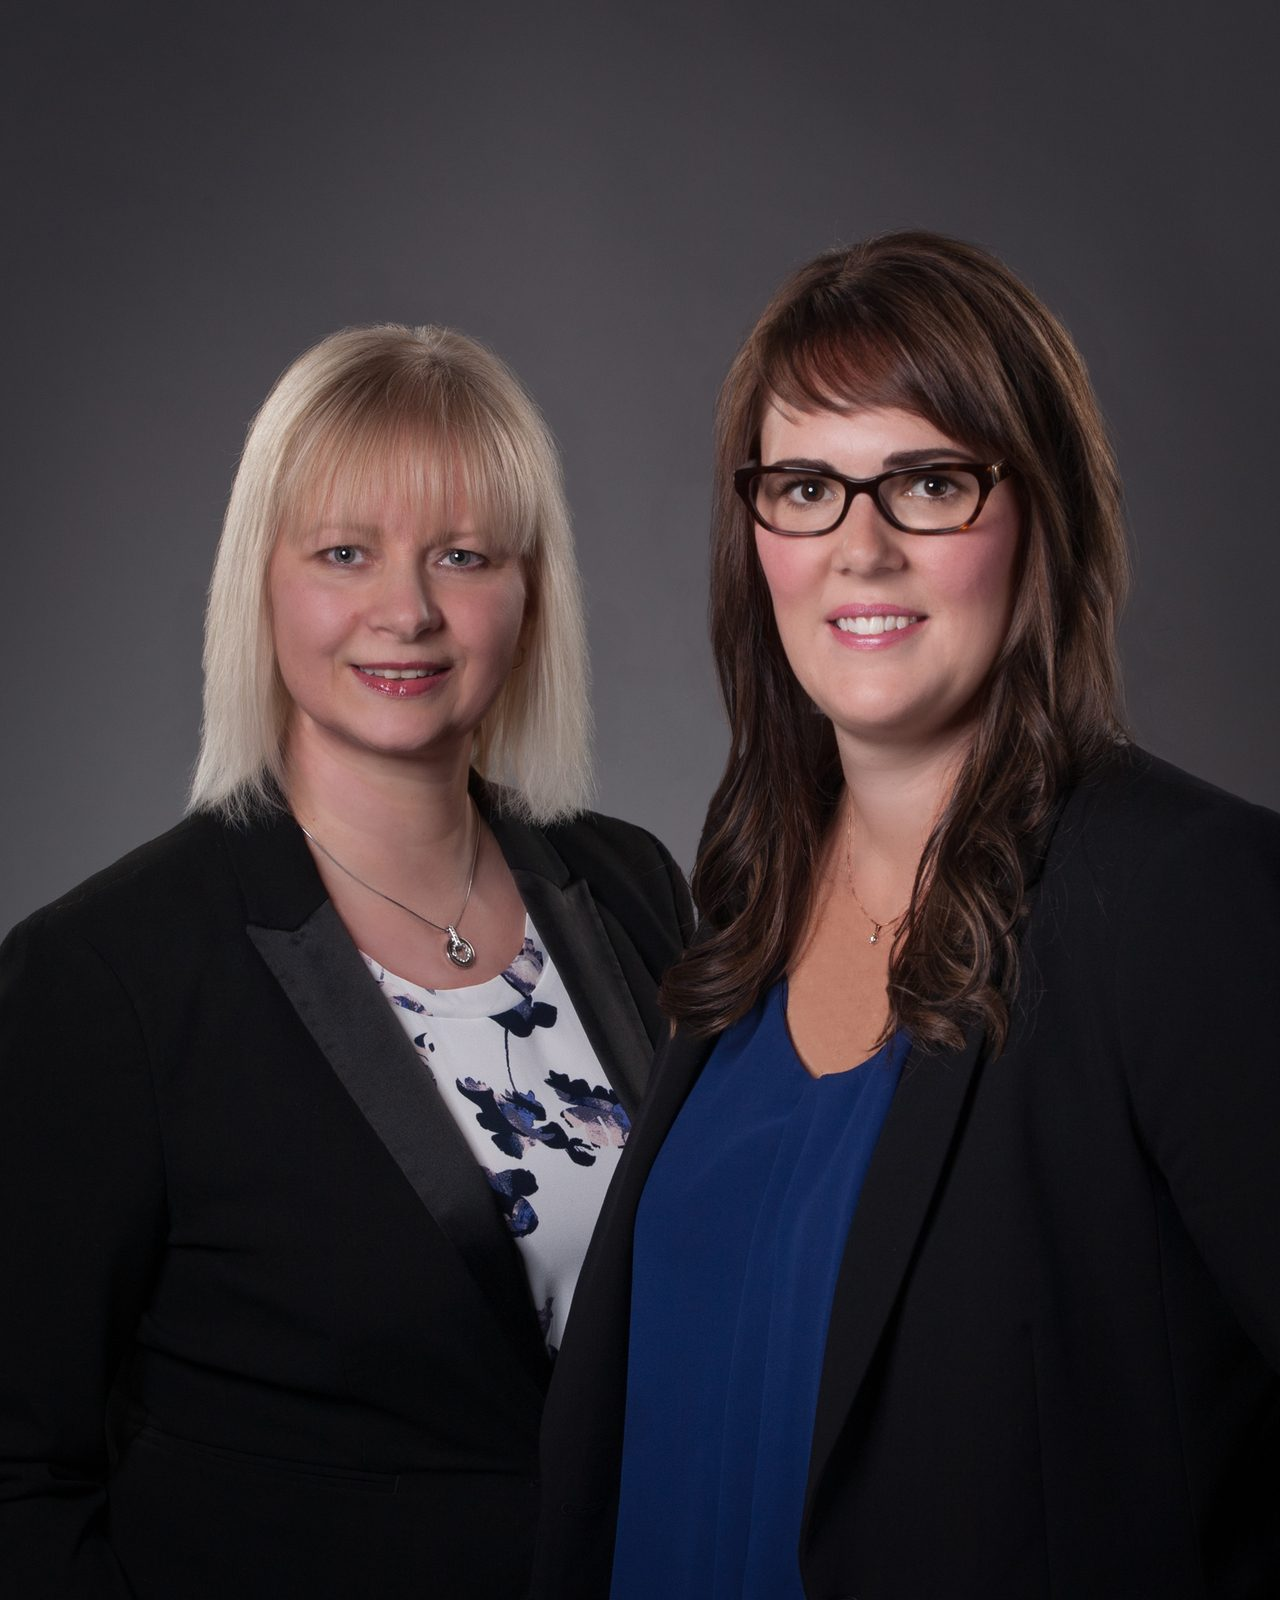 Keely Hartviksen and Associates - TD Wealth Private Investment Advice - Thunder Bay, ON P7B 4A4 - (807)346-1314   ShowMeLocal.com